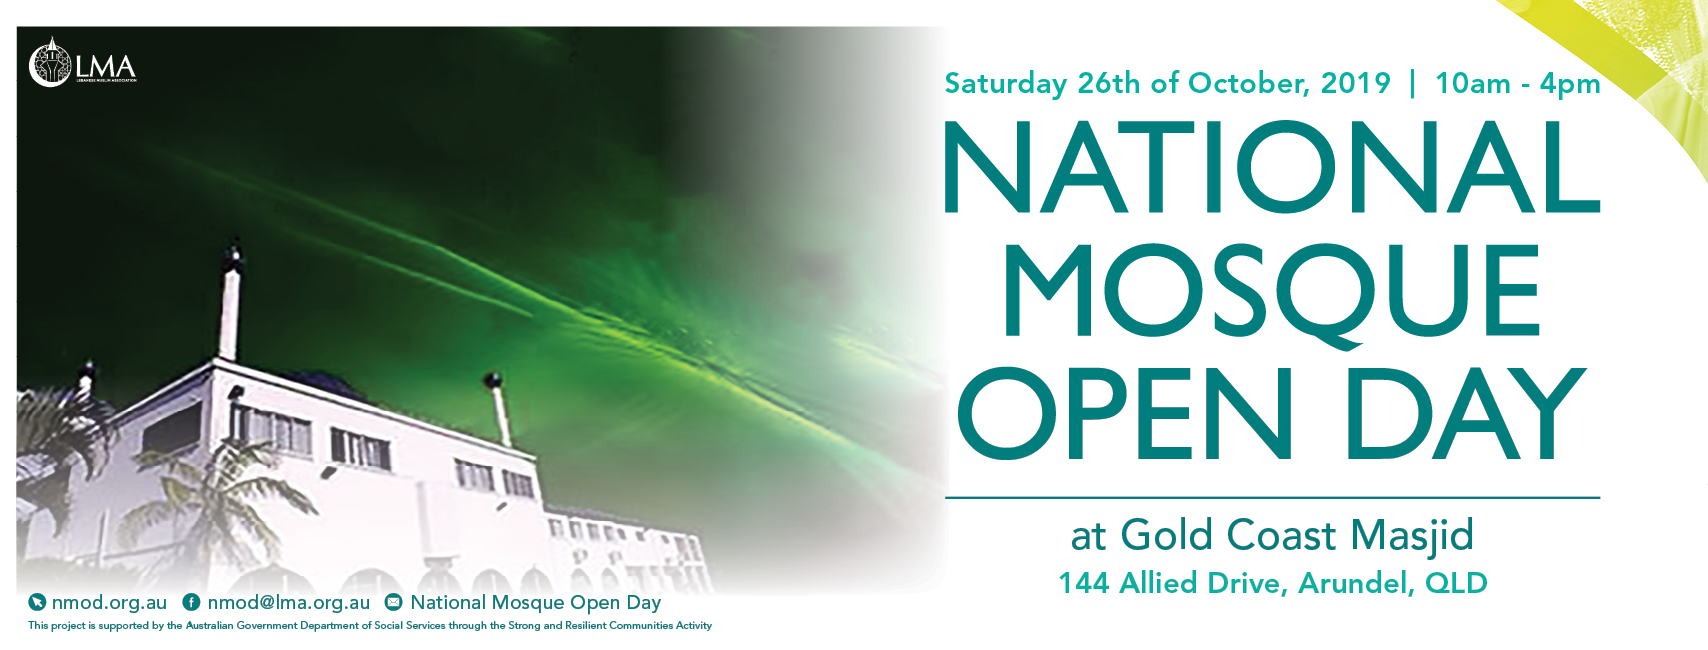 Gold Coast Masjid Mosque Open Day